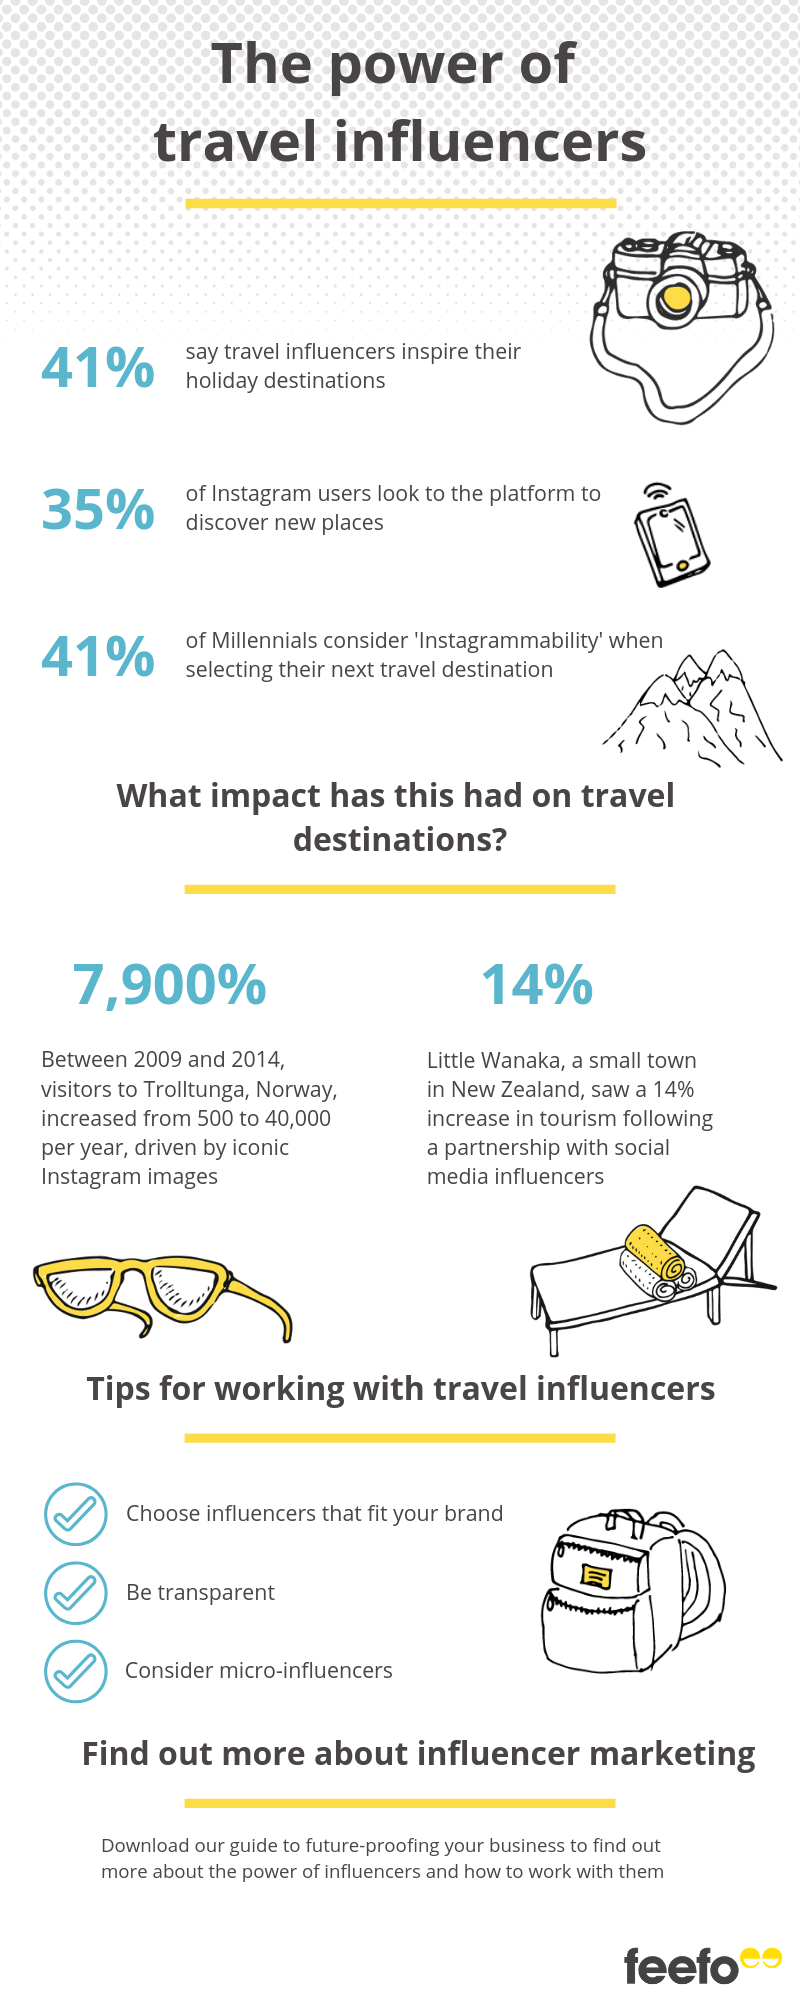 The power of travel influencers infographic